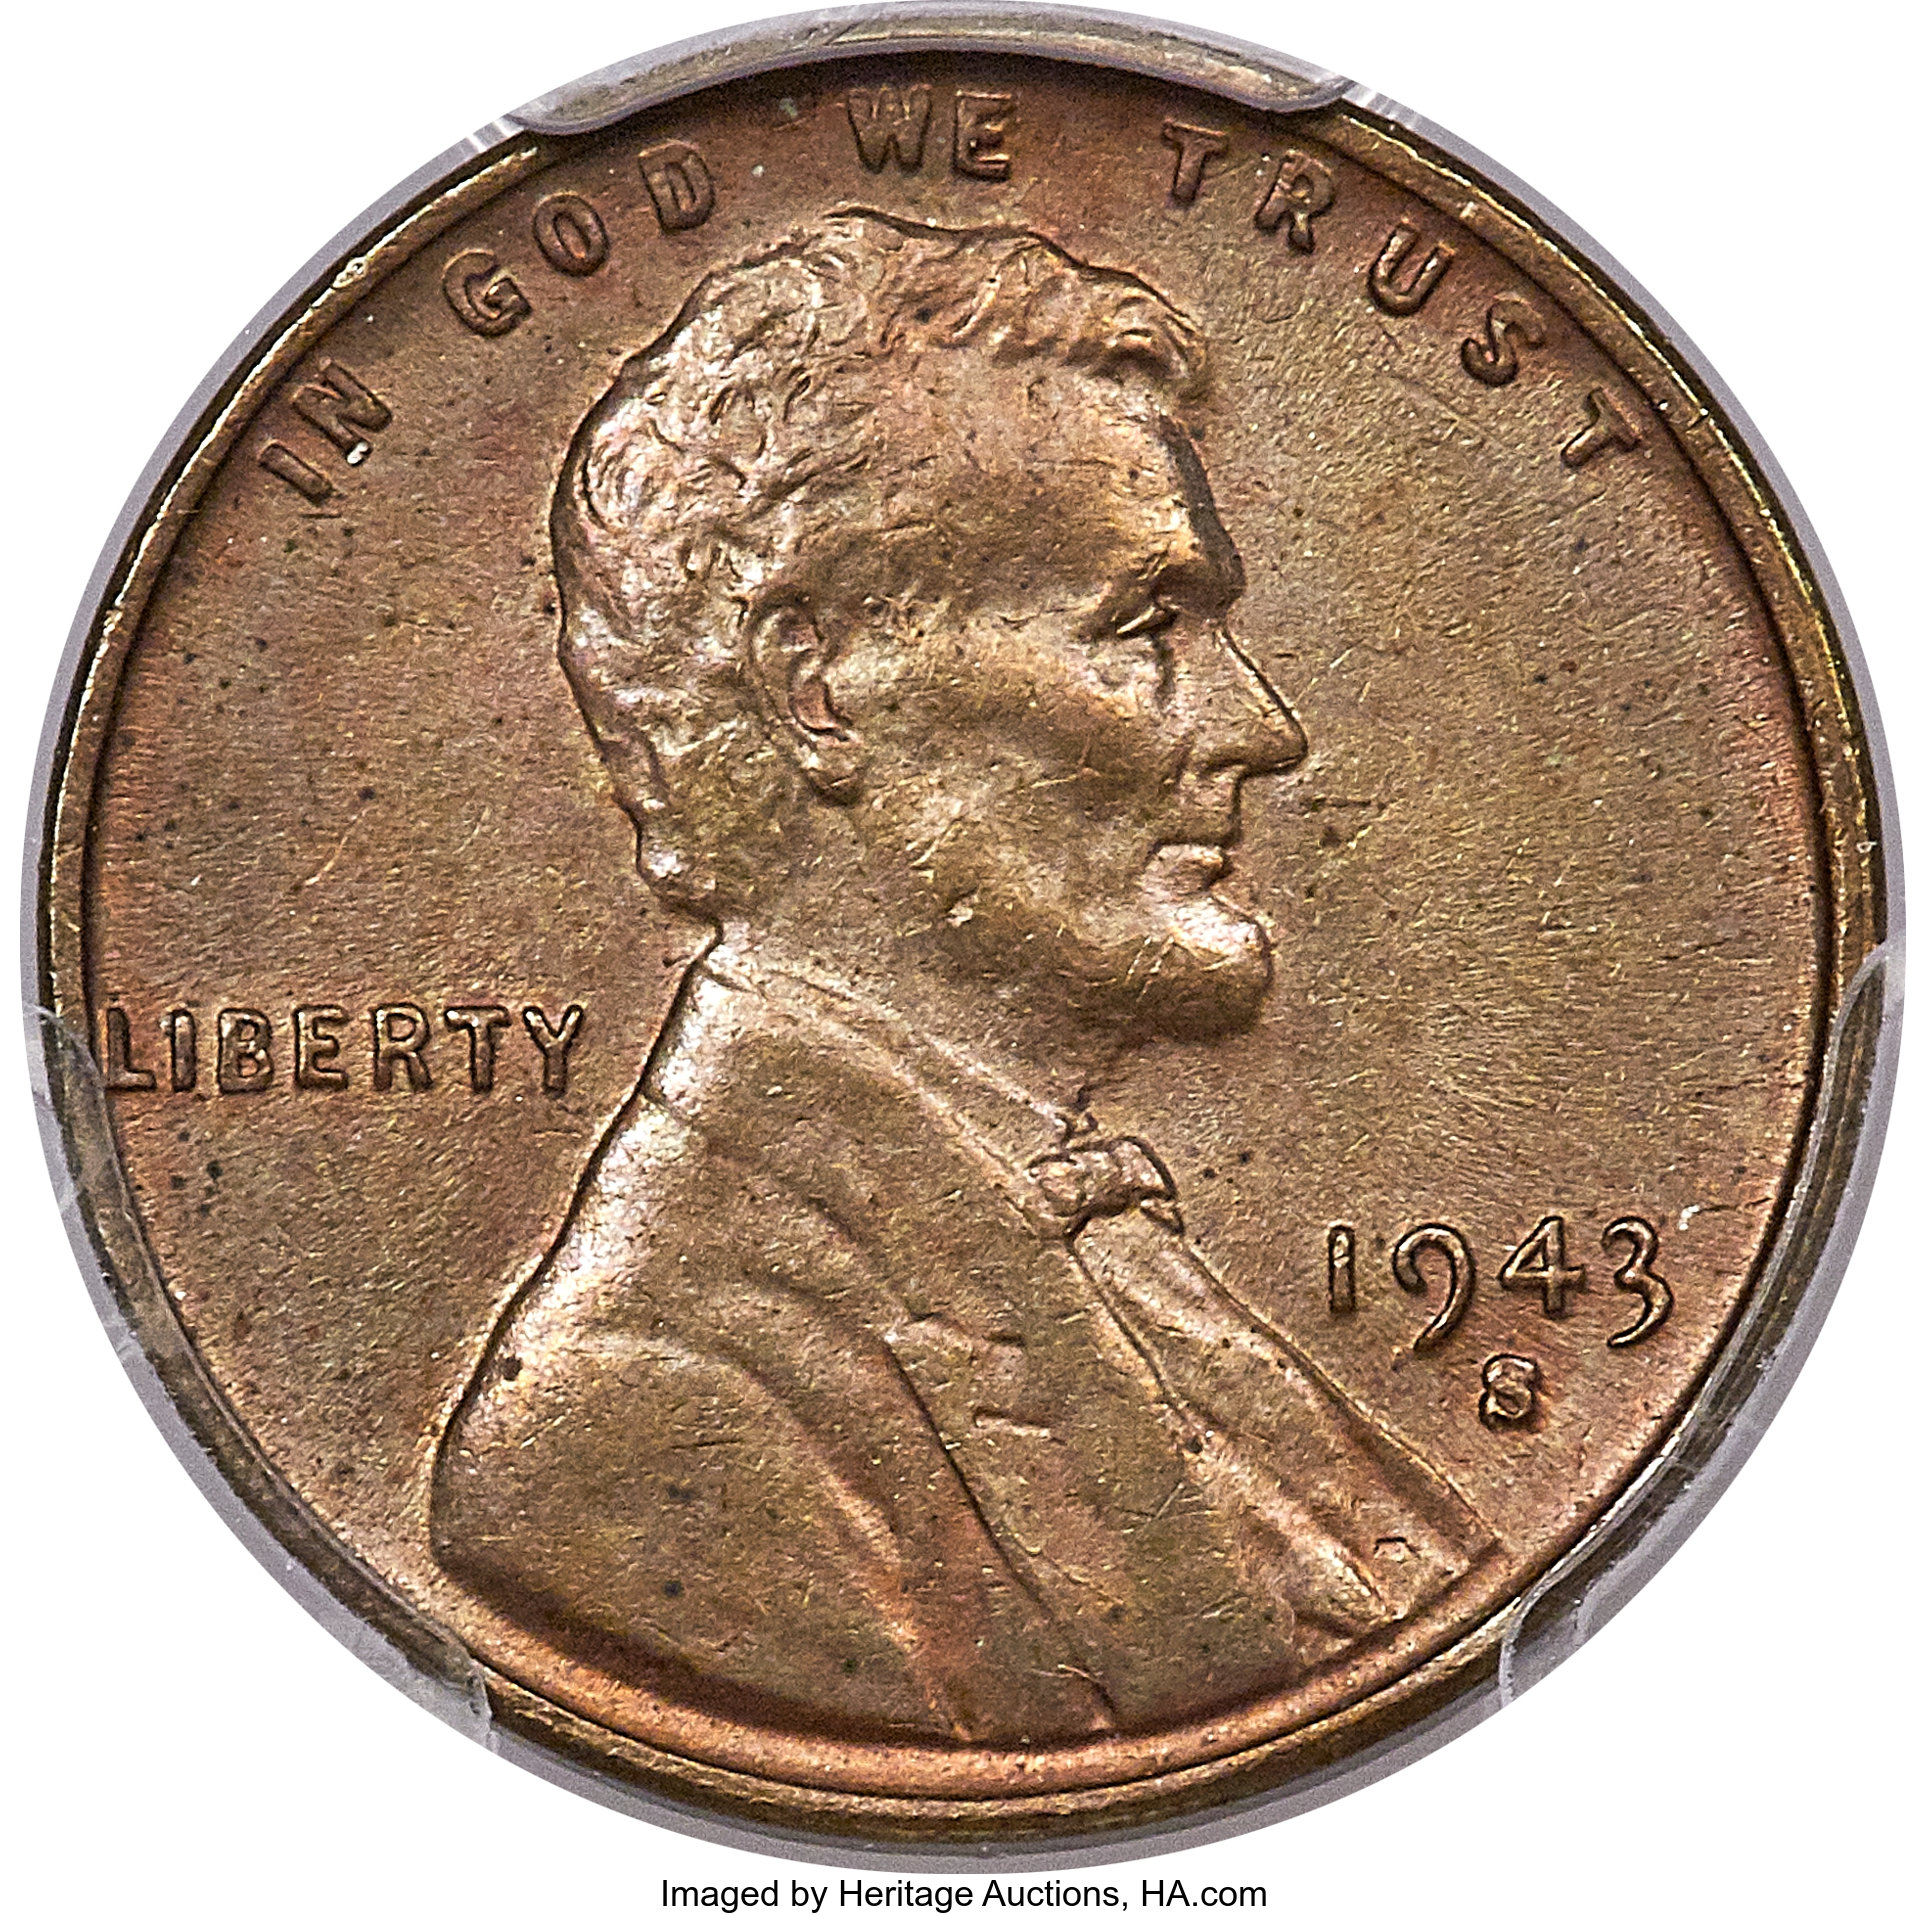 main image for Bronze Penny Error from 1943 Realizes Over $500k at Heritage Auction